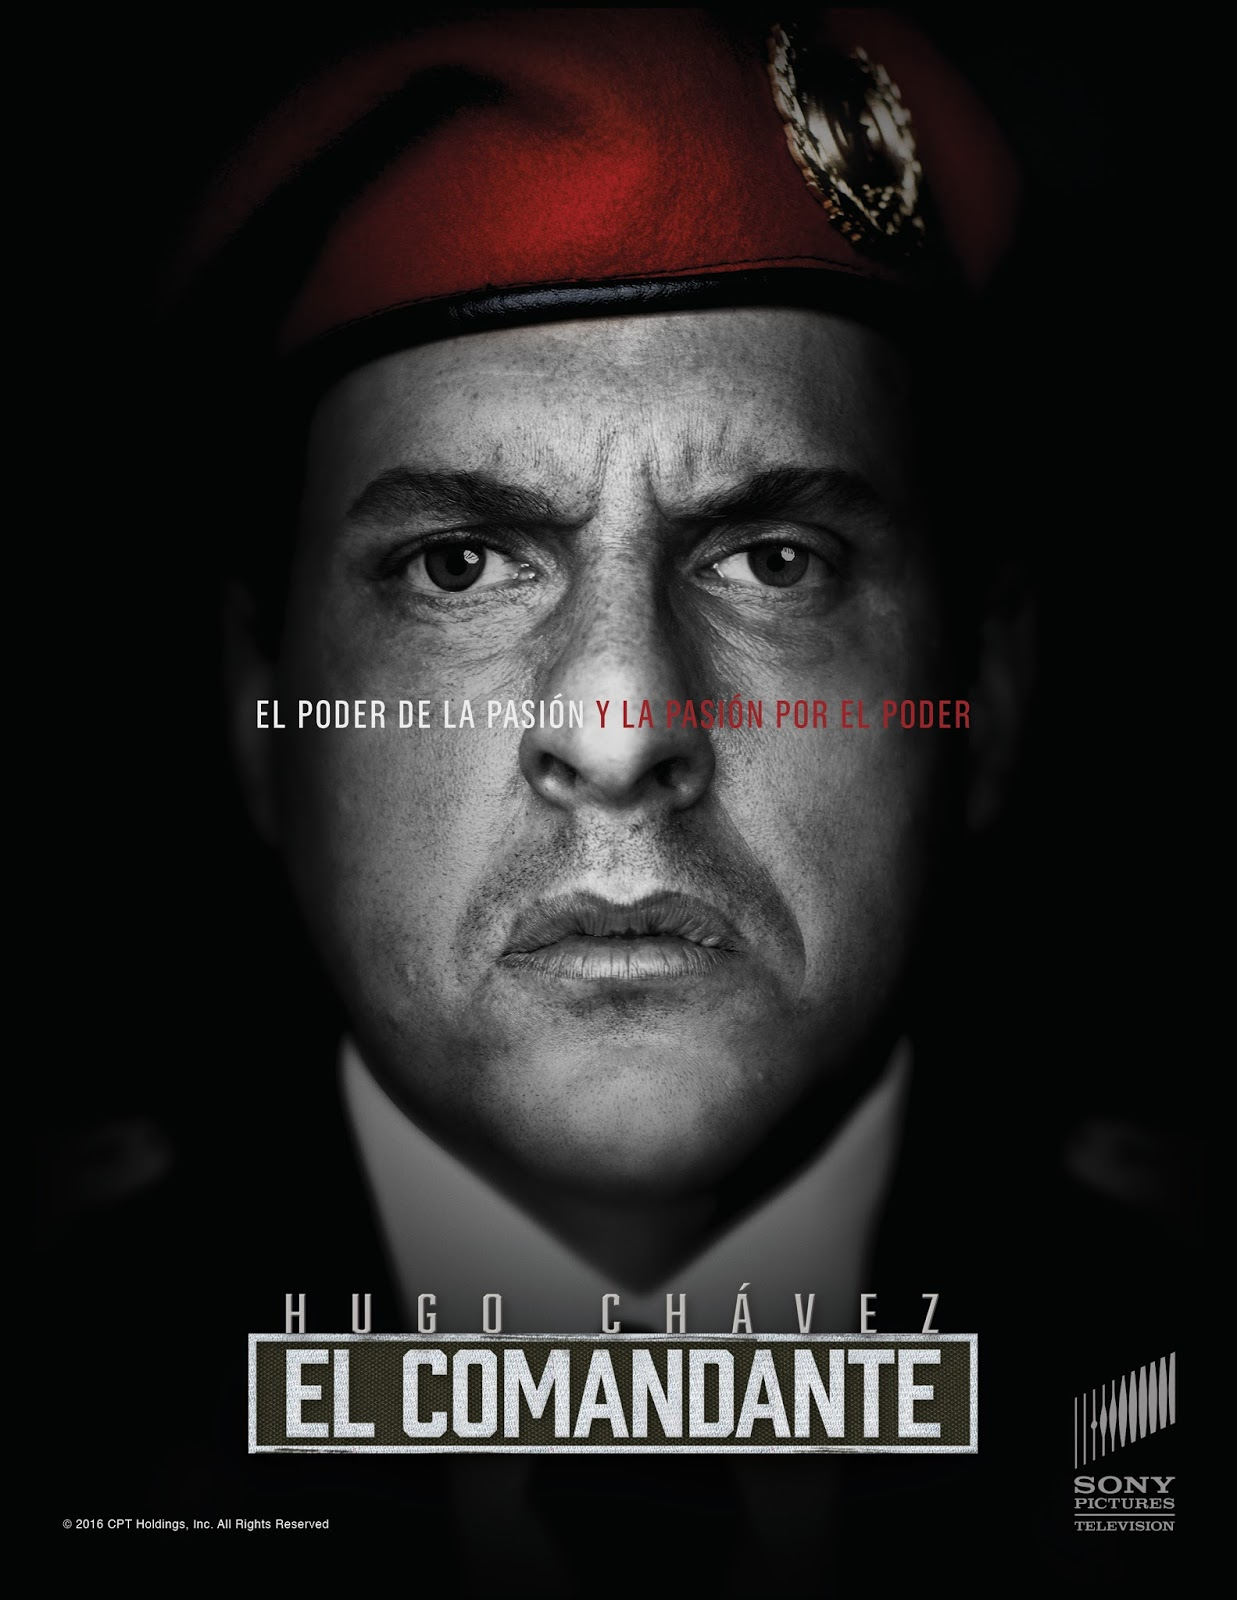 El Comandante 1x60 Latino Disponible